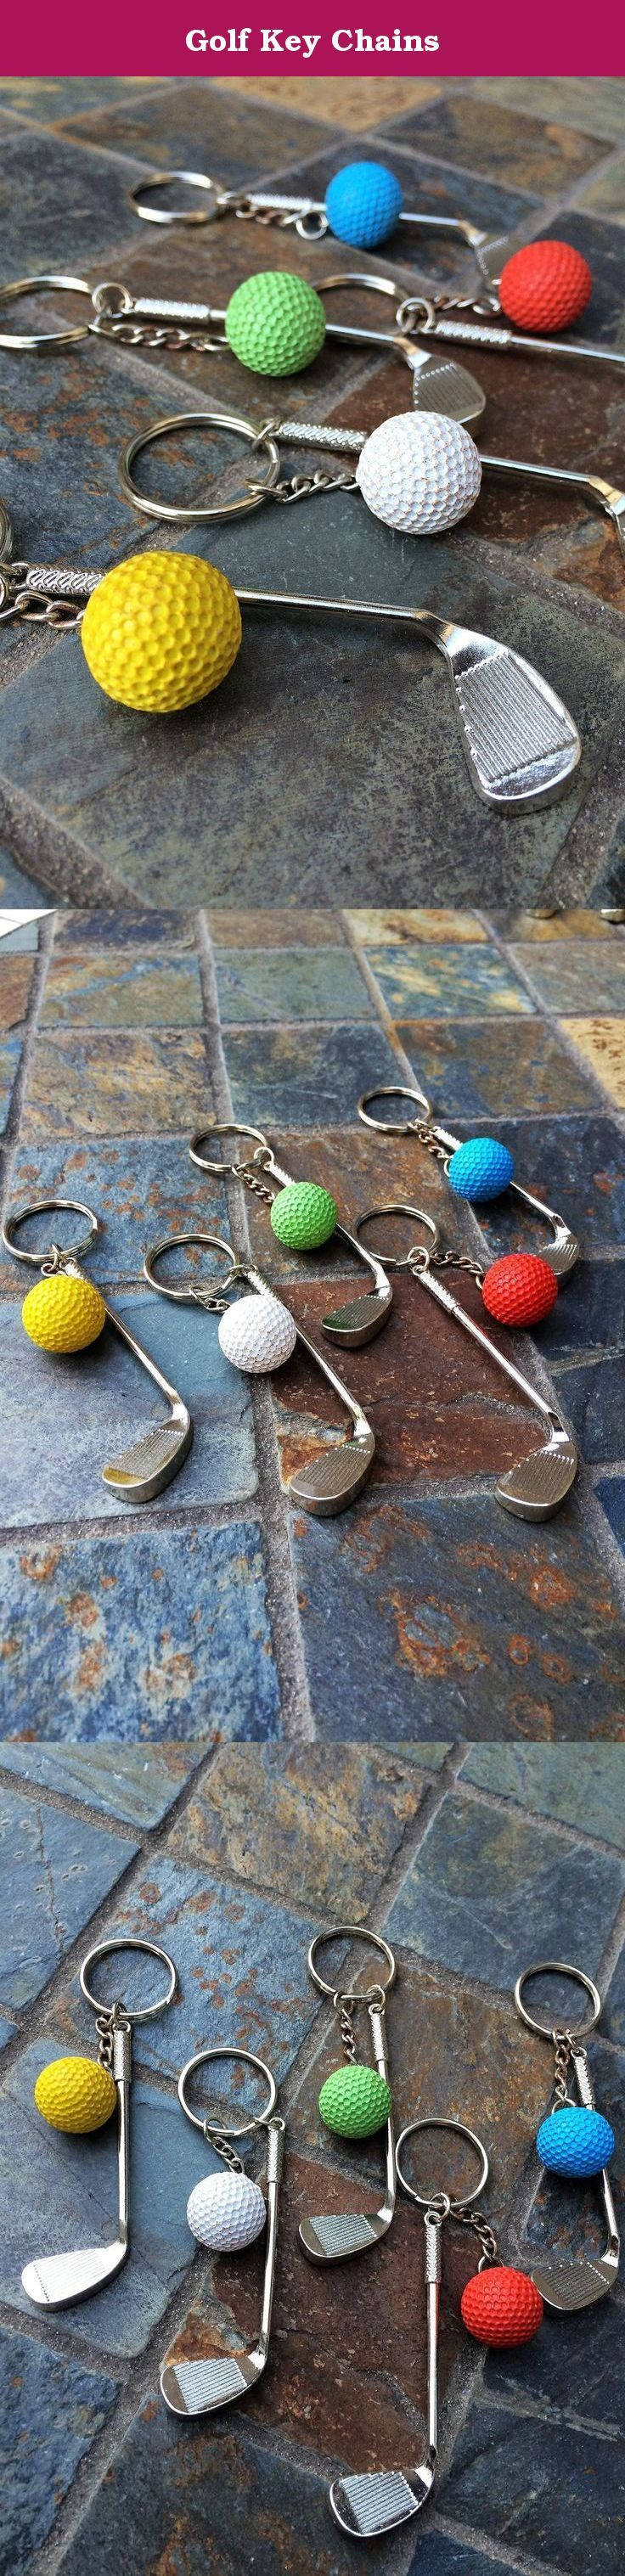 """Golf Key Chains. Looking for a little something for the golf enthusiast who has EVERYTHING! Try these super cute golf themed keychains! They are affordable enough to be given away as party favors too. Have some fun and give a gift that will make your loved one say """"Wow! That's pretty cool!""""."""